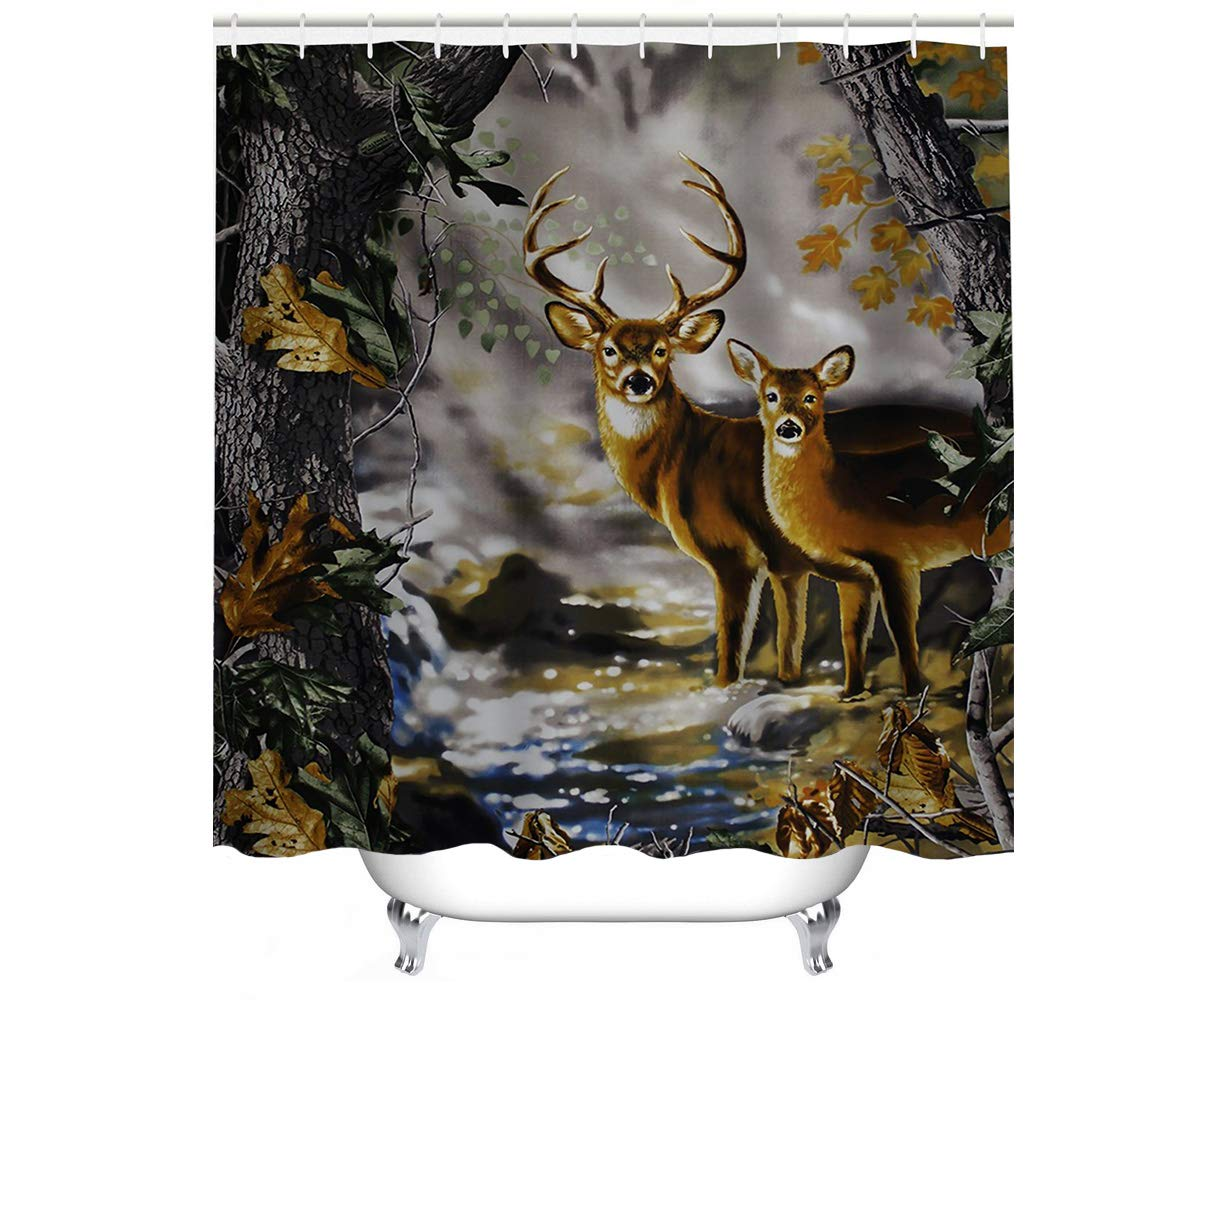 """Cheerhunting Deer Shower Curtain,Deer Couple in The Foggy Jungle, Shower Curtain with Hooks for Bathroom, 72""""W x 72""""H Waterproof Fabric Bathroom Décor"""